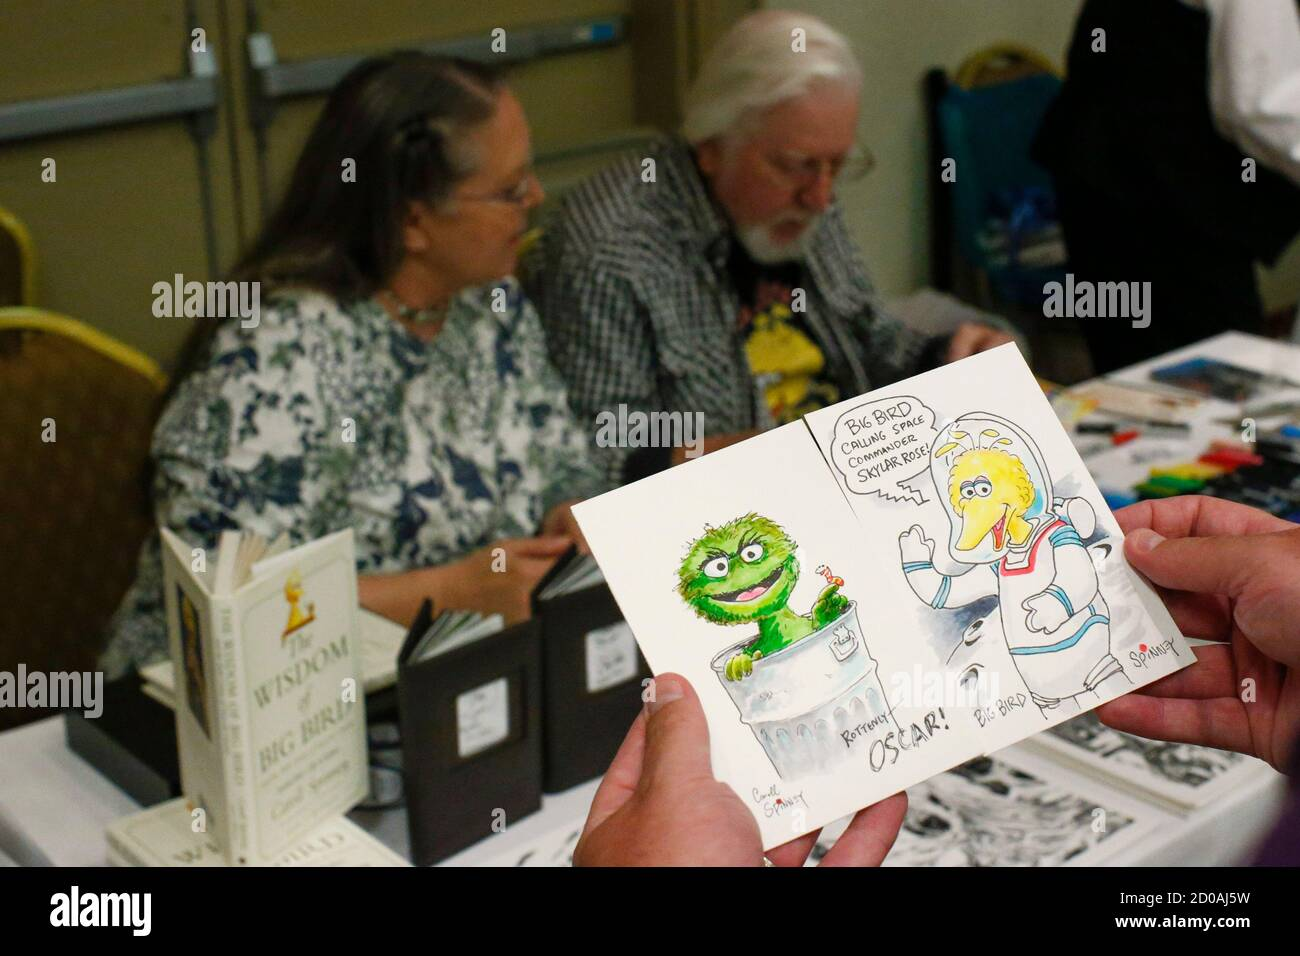 A man displays sketches by Caroll Spinney (back R) as he signs autographs during the Dean Martin Expo and Nostalgic, Comedy and Comic Convention featuring collection of memorabilia from the 1950's and 60's, in New York June 28, 2014. REUTERS/Eduardo Munoz (UNITED STATES - Tags: ENTERTAINMENT SOCIETY) Stock Photo